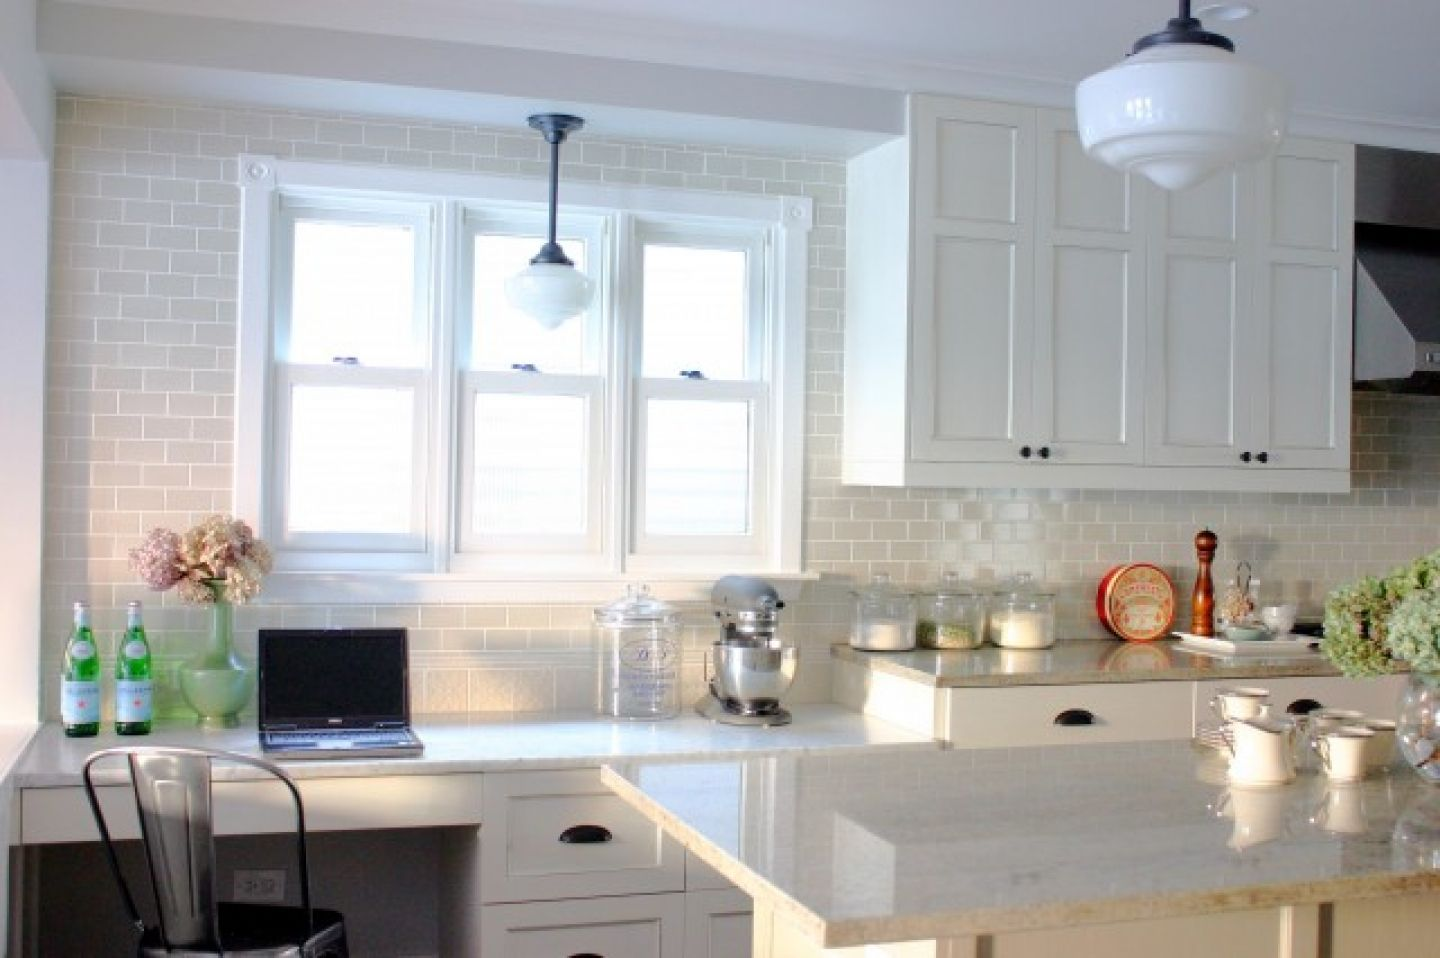 Elegant Backsplash Ideas Part - 33: Elegant Subway Tile Backsplash Kitchen | Design Ideas And Decor